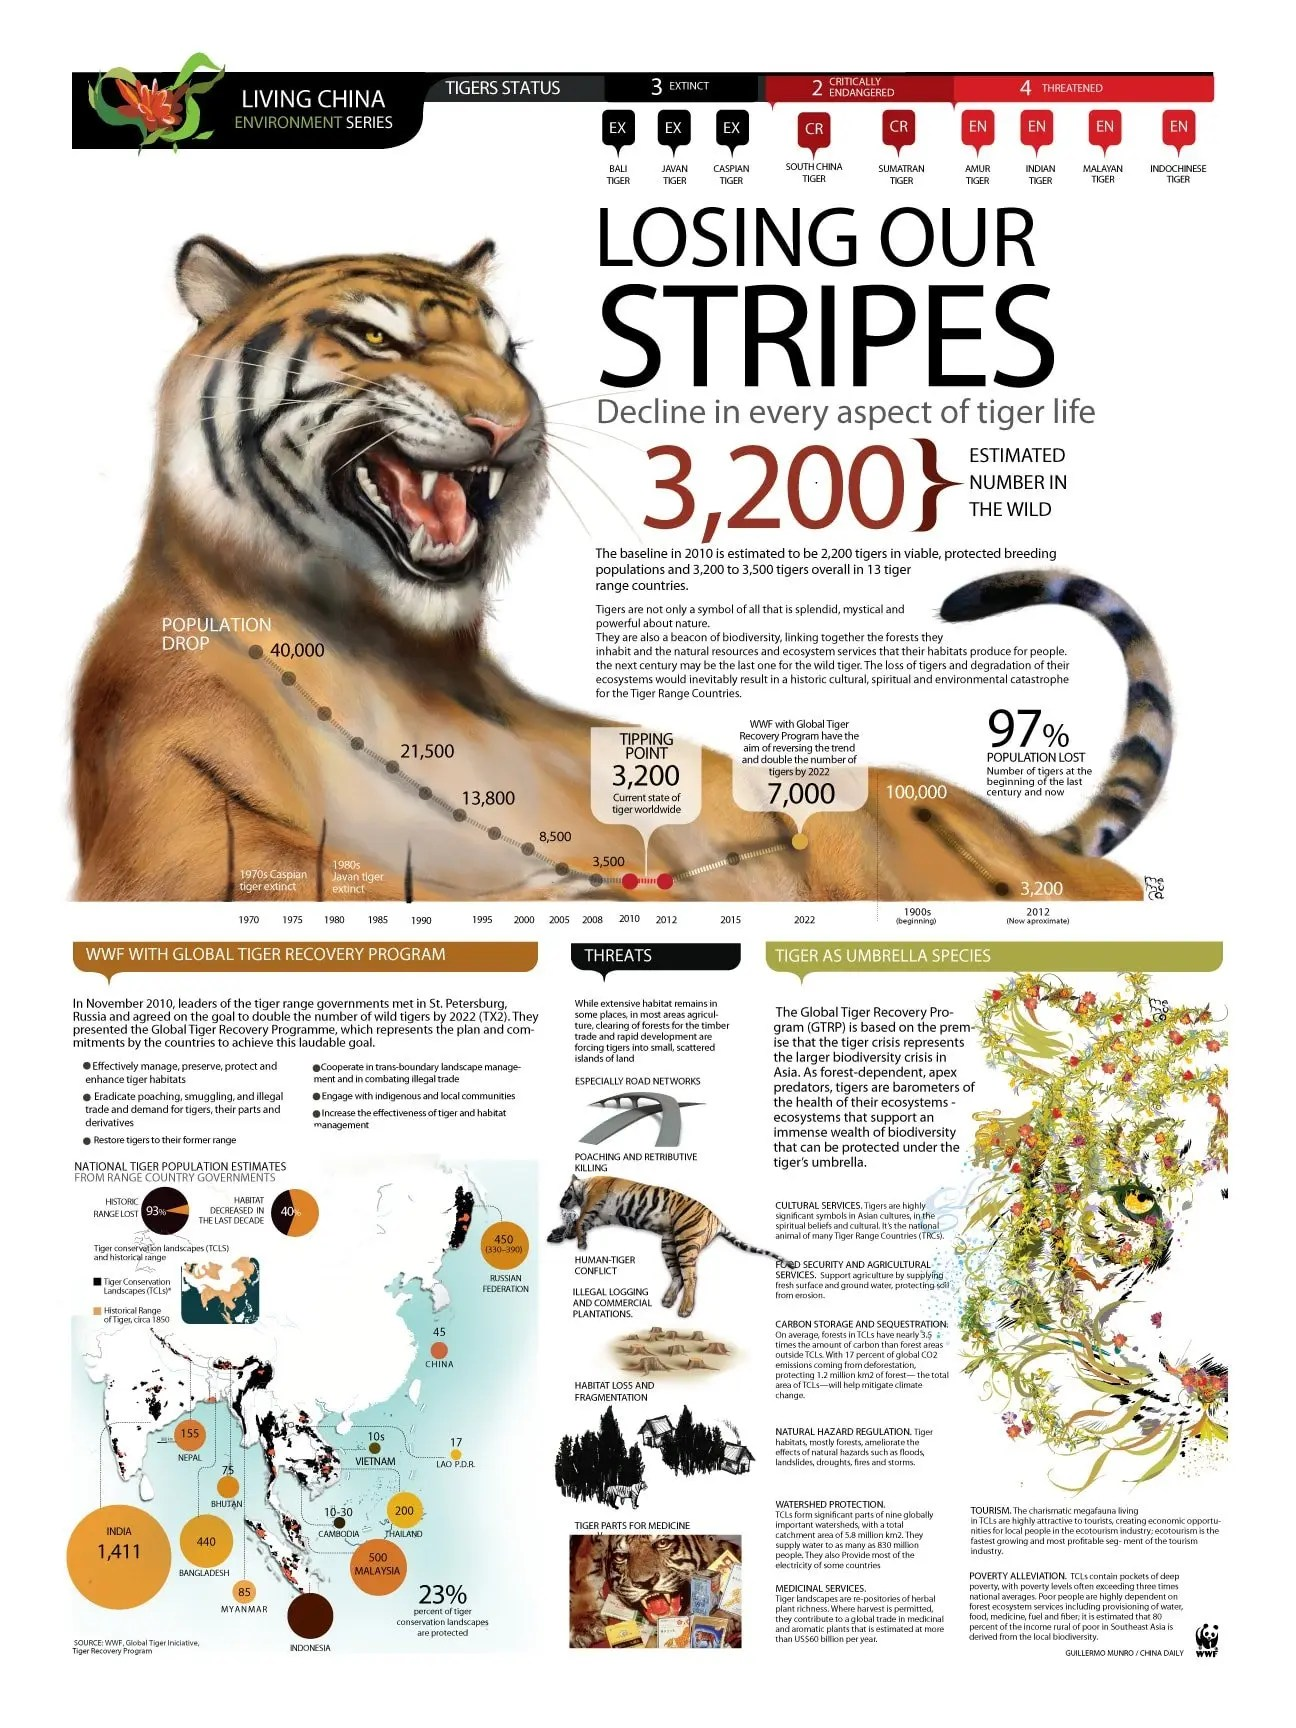 Infographic Losing Our Stripes